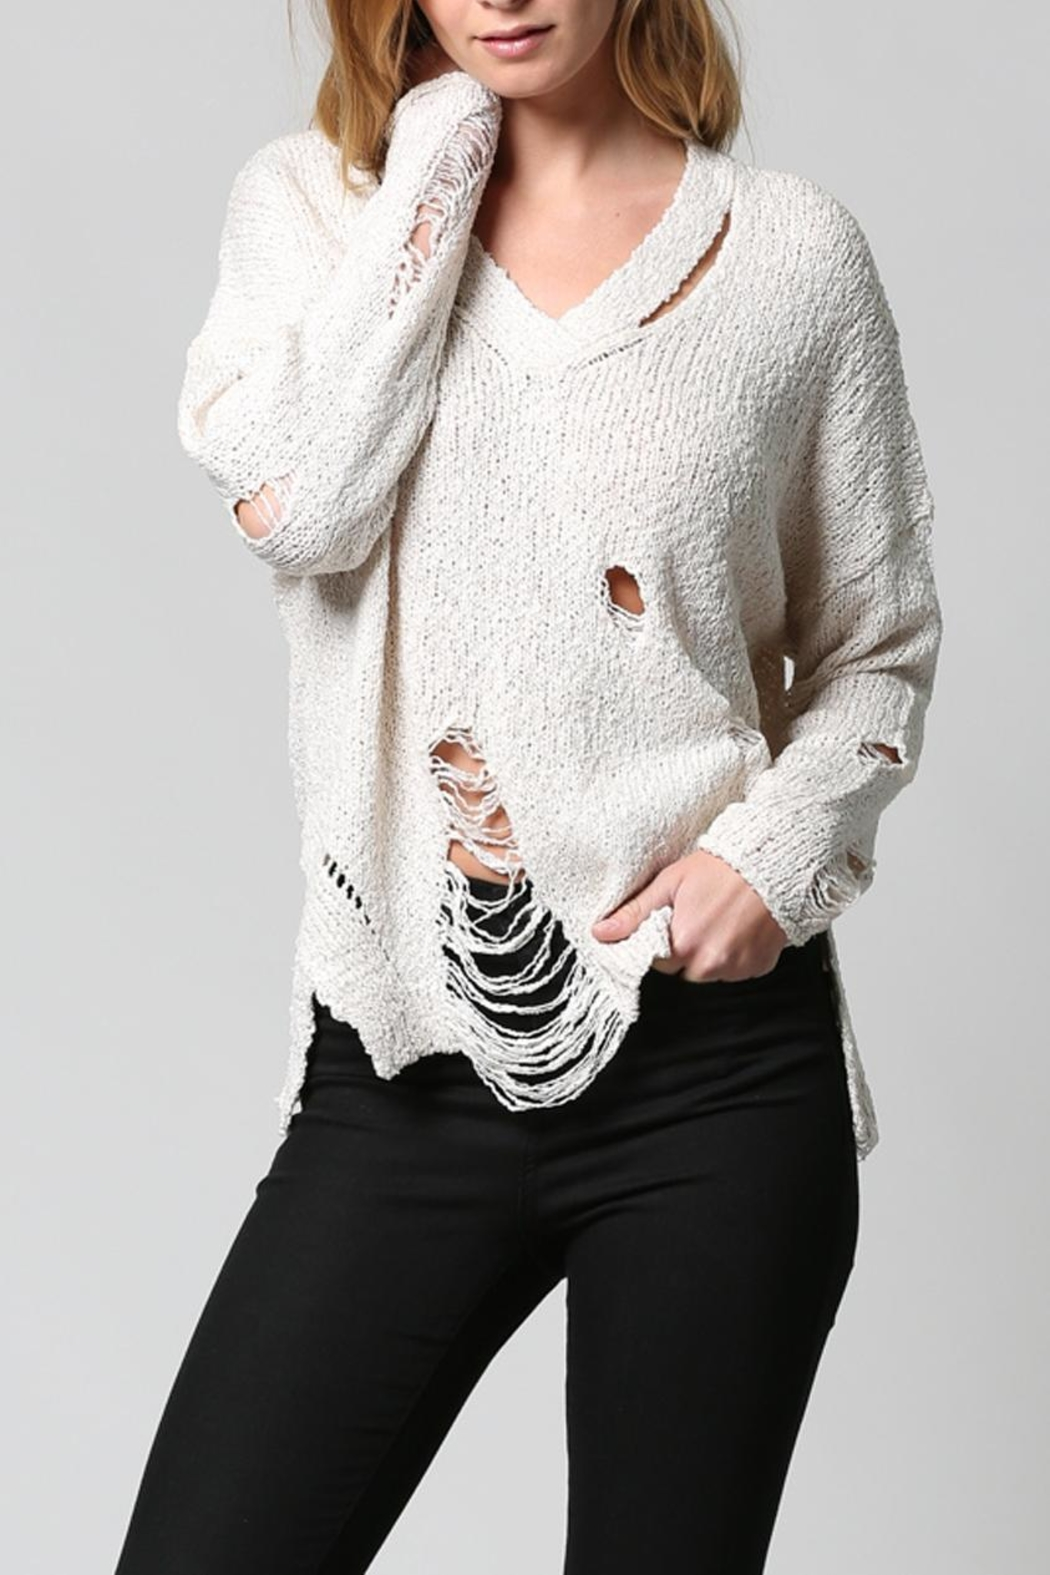 FATE by LFD Distressed Sweater - Front Full Image